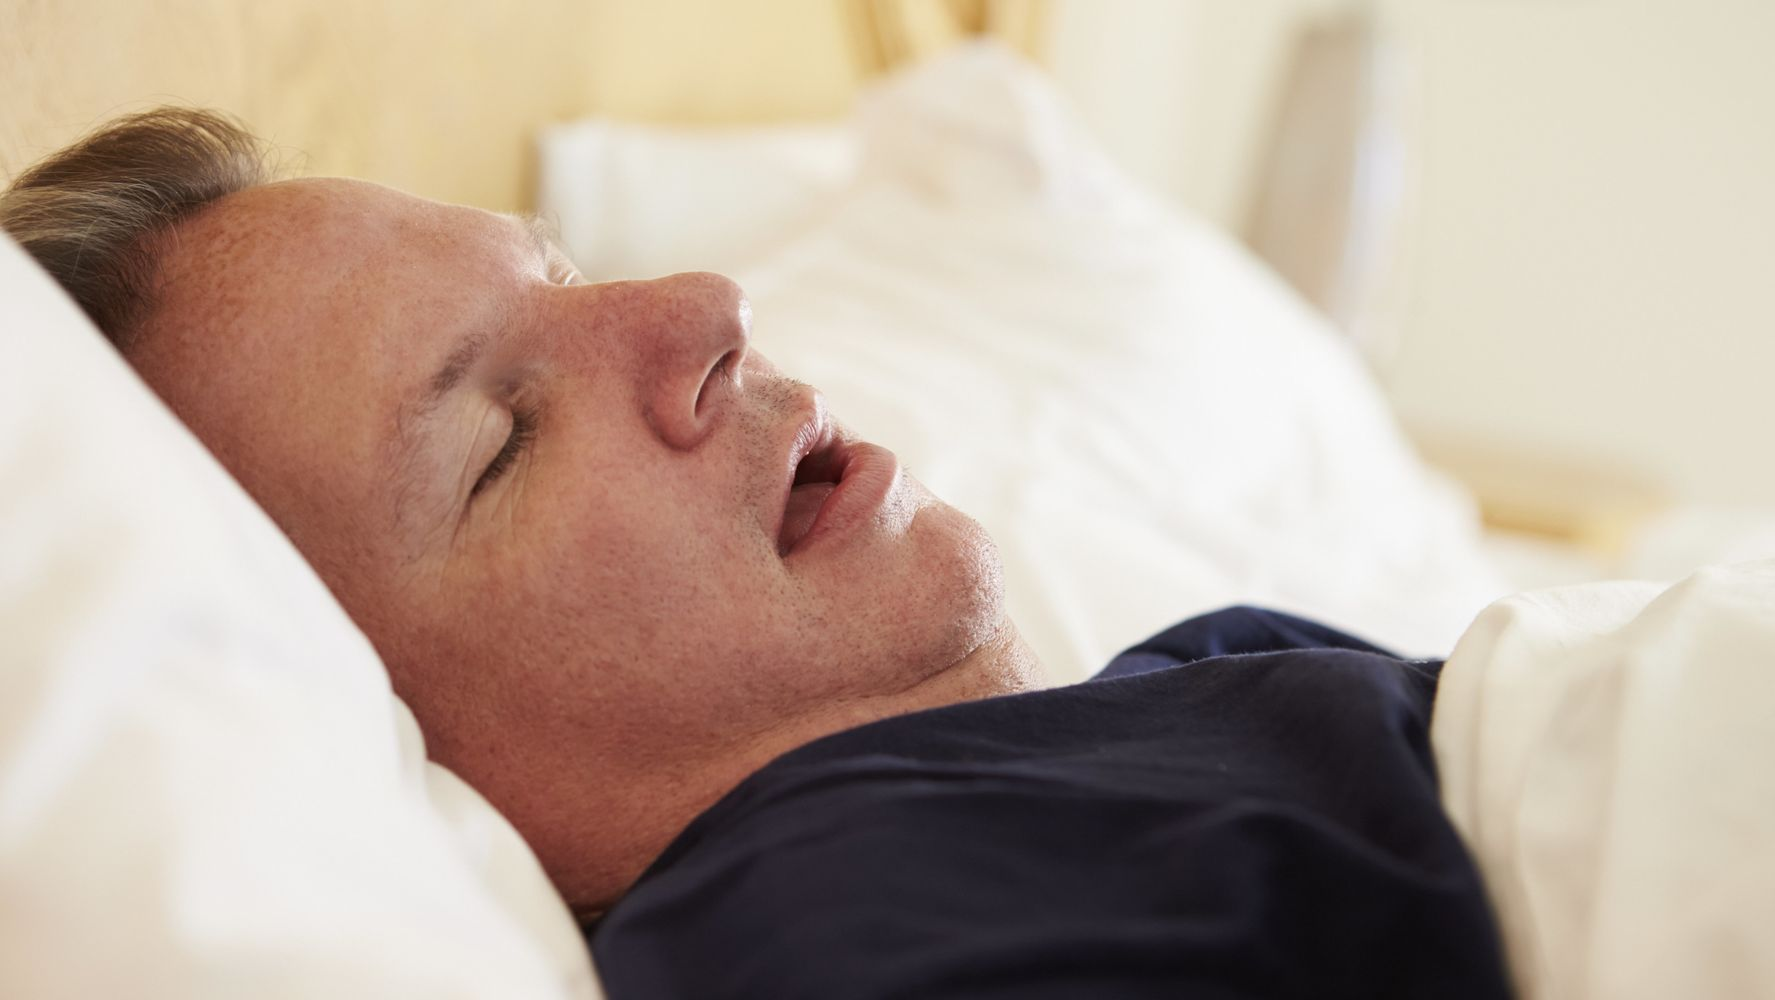 Precision Is Just What You Need For Sleep Apnea Treatment